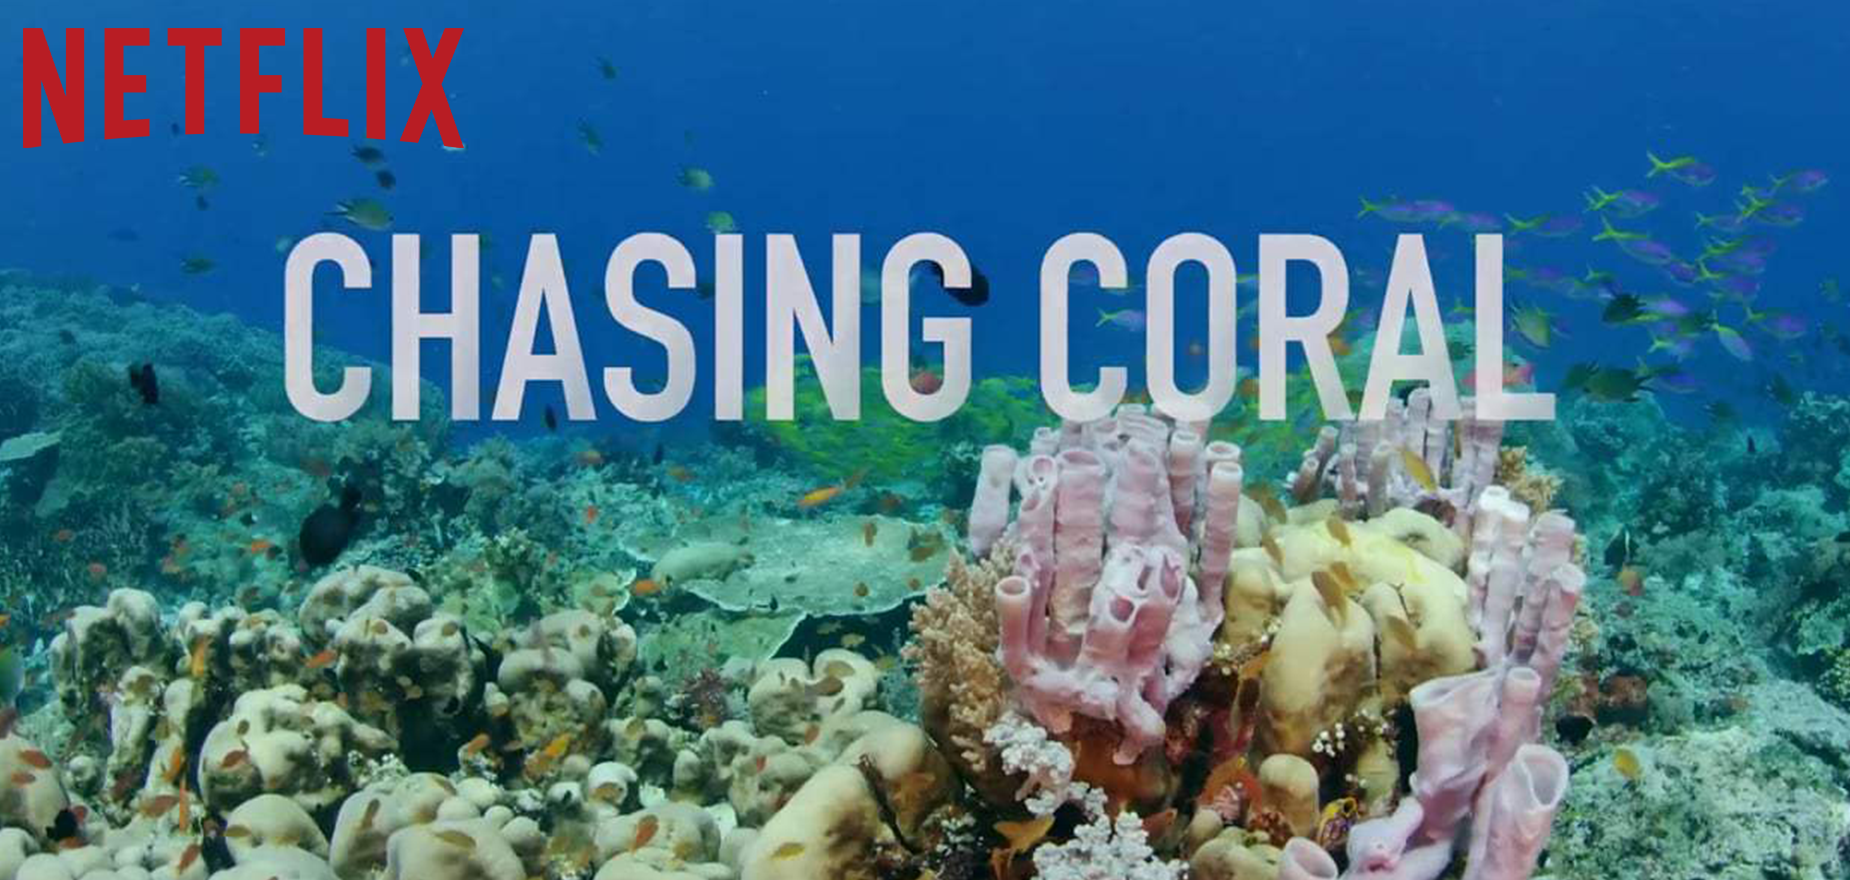 Chasing Coral - An Exposure Labs Production in partnership with The Ocean Agency + View Into the Blue in association with Argent Pictures